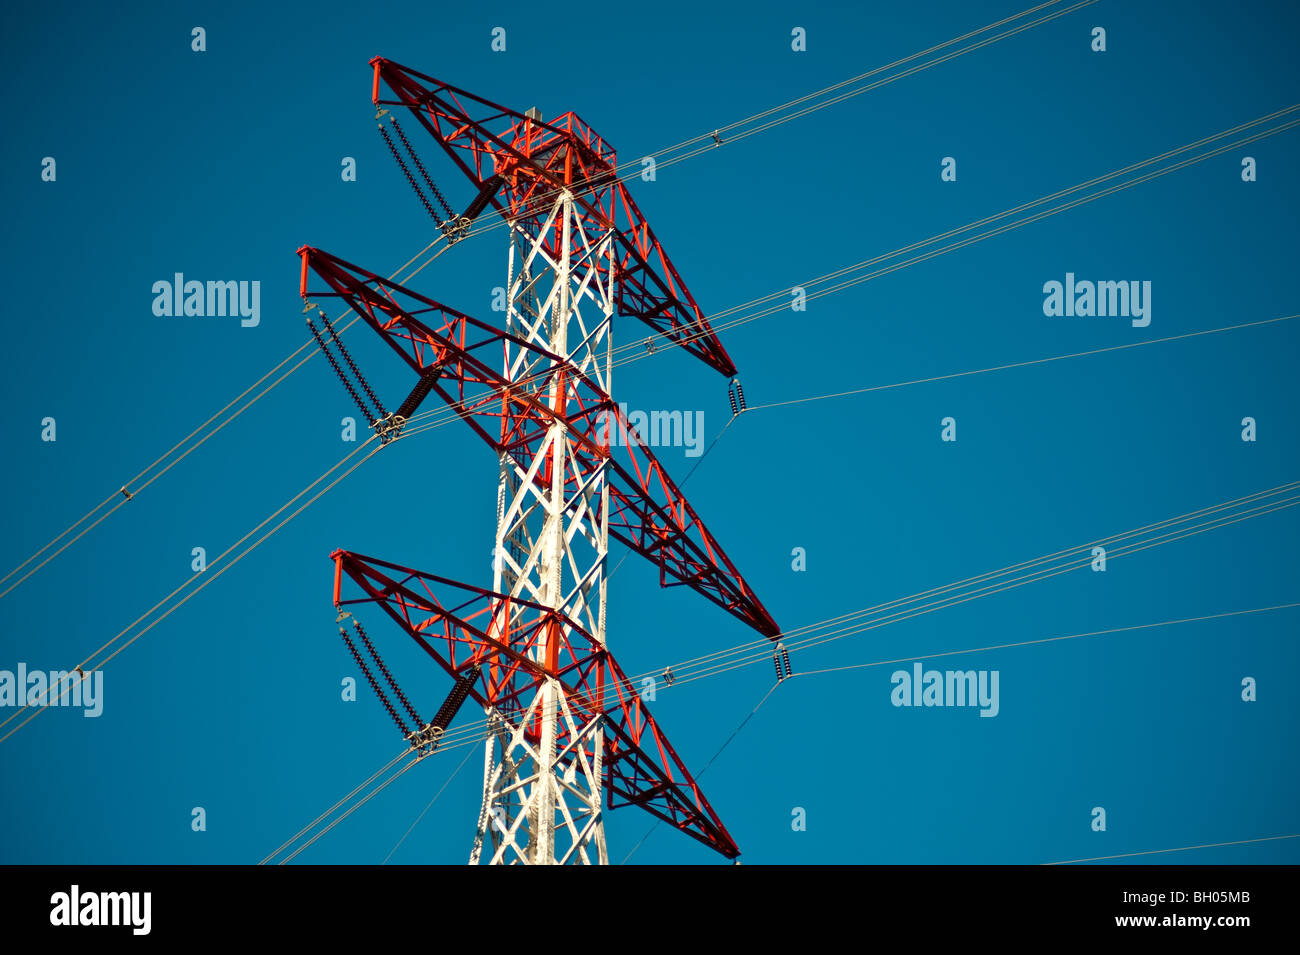 Energy transmission towers against a blue sky - Stock Image